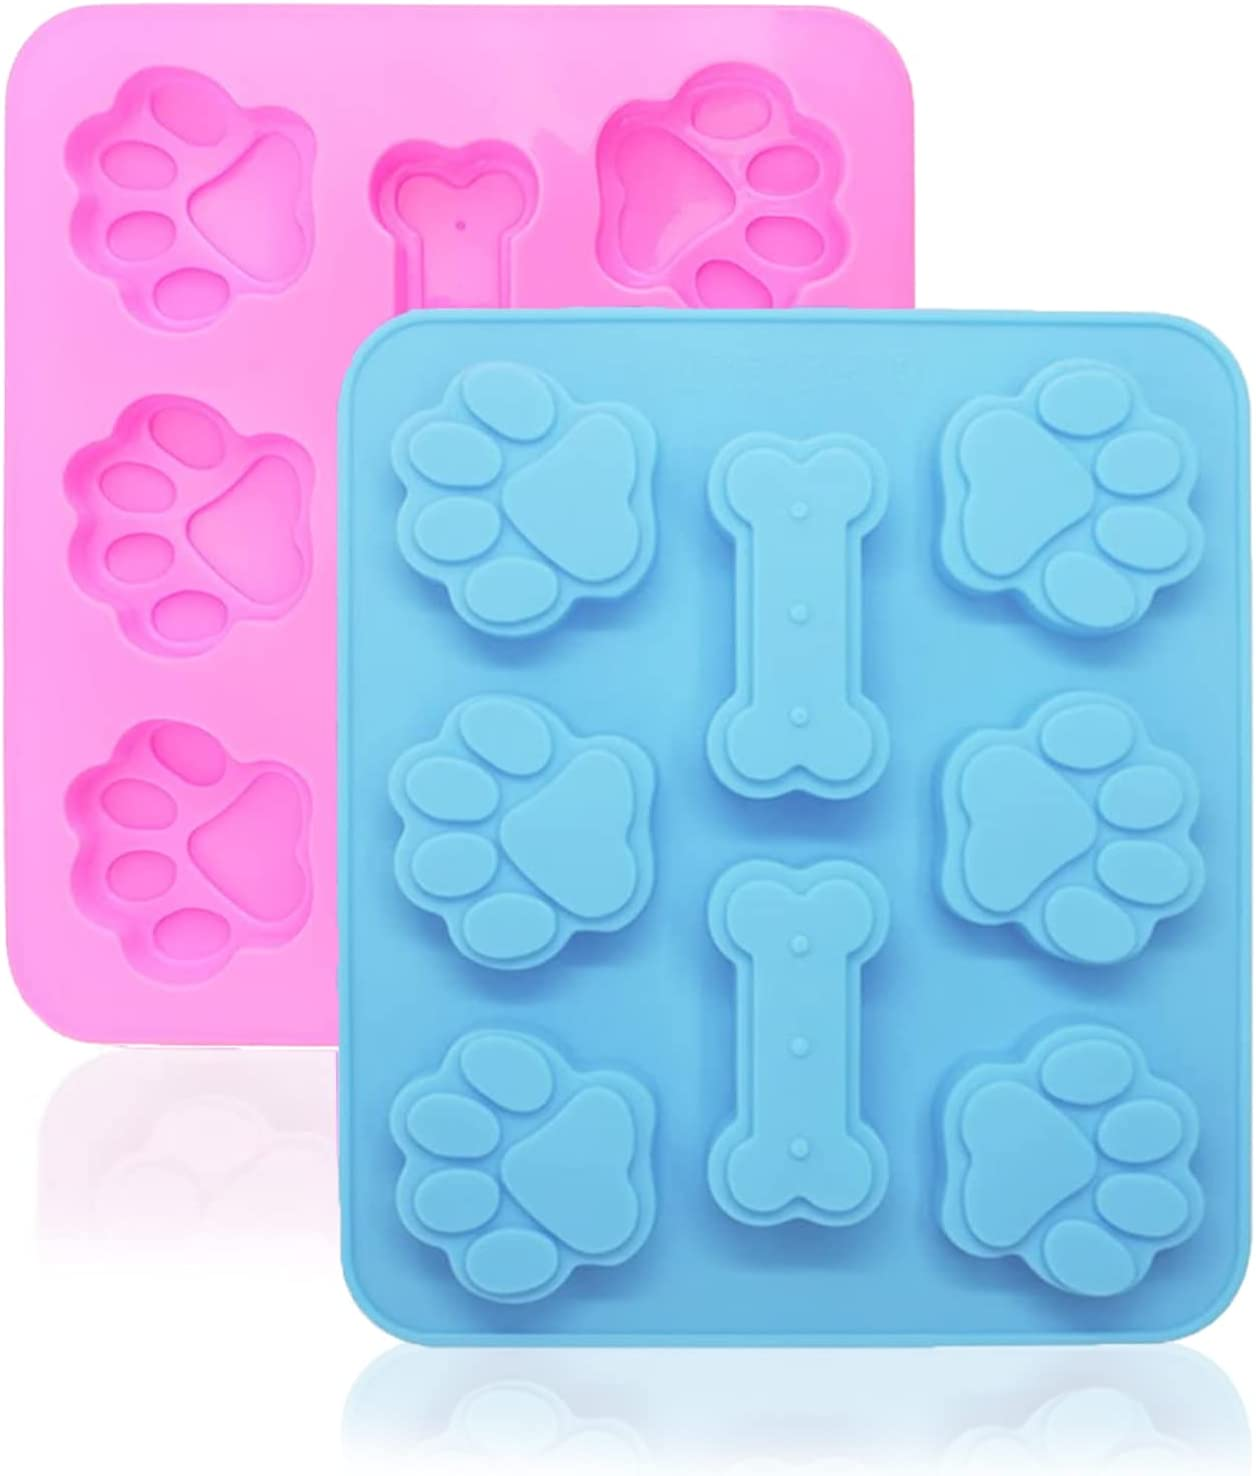 2 Pack Dog Treat Mold,Puppy Dog Paw & Bone Shaped 2 in 1, Reusable Candy Silicone Tray, Easy to clean, Suitable for Microwave Oven, Refrigerator, Oven